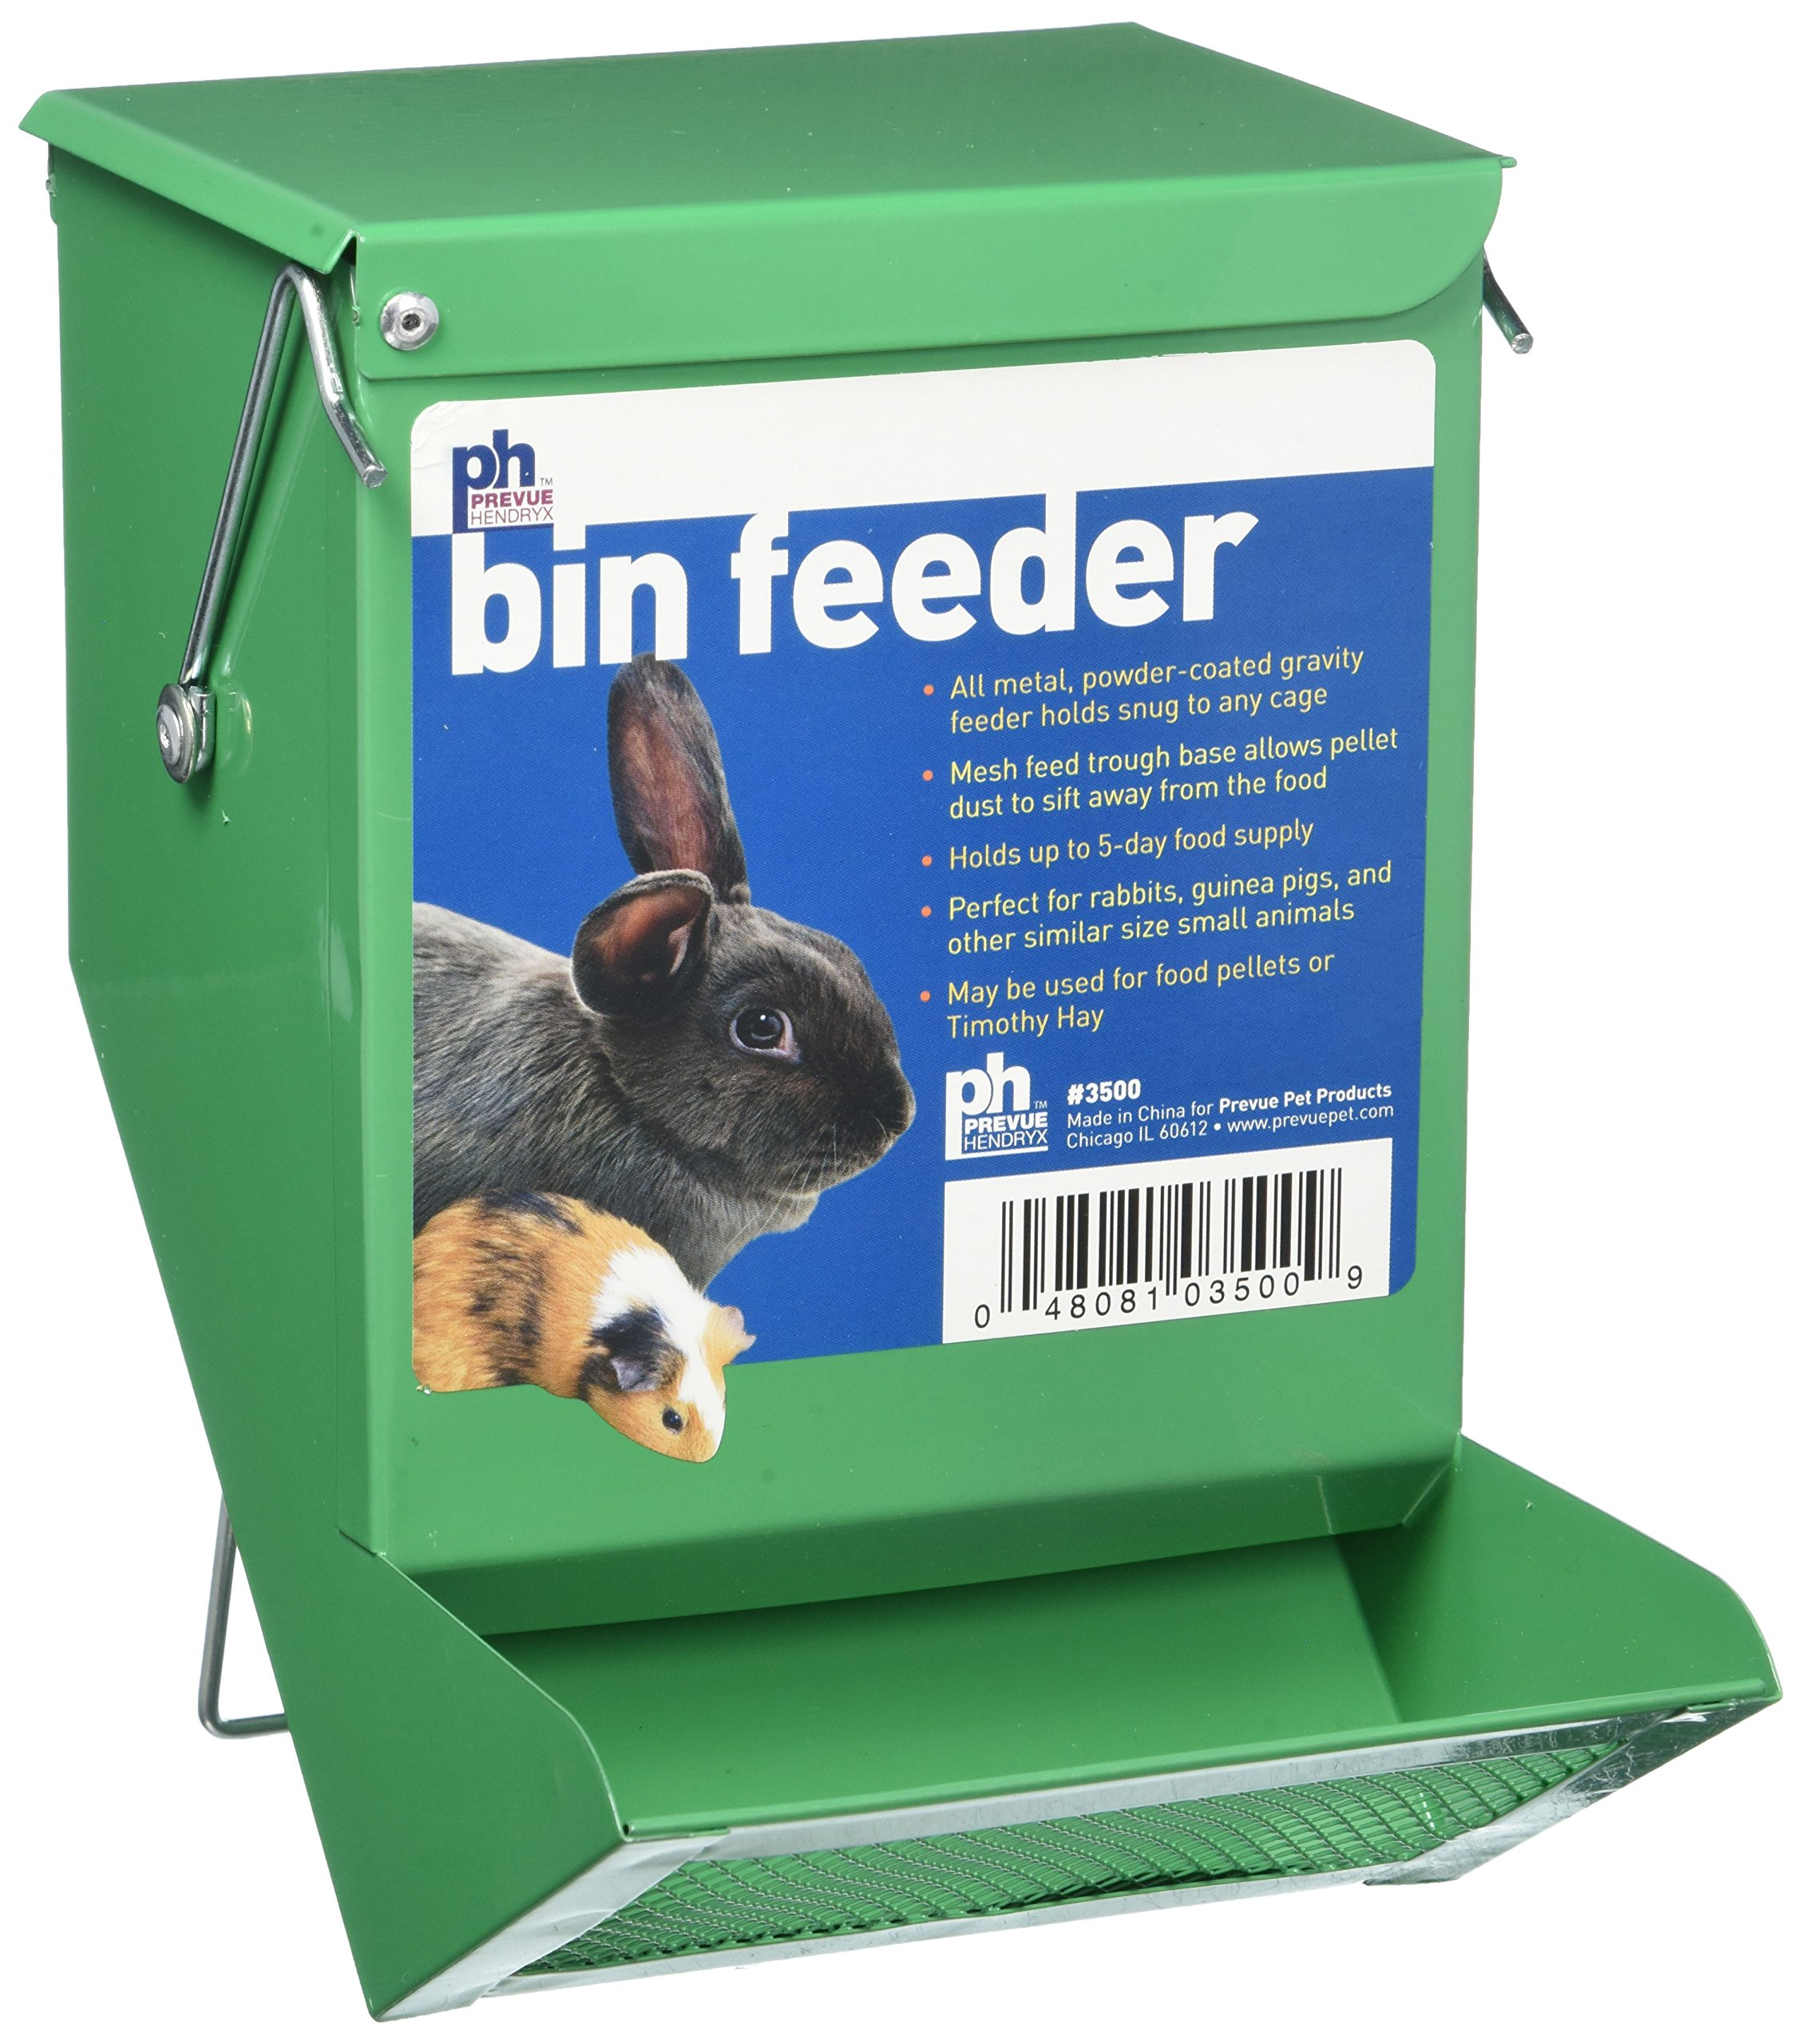 feeder programmable meal feed index pet catalog healthy auto simply